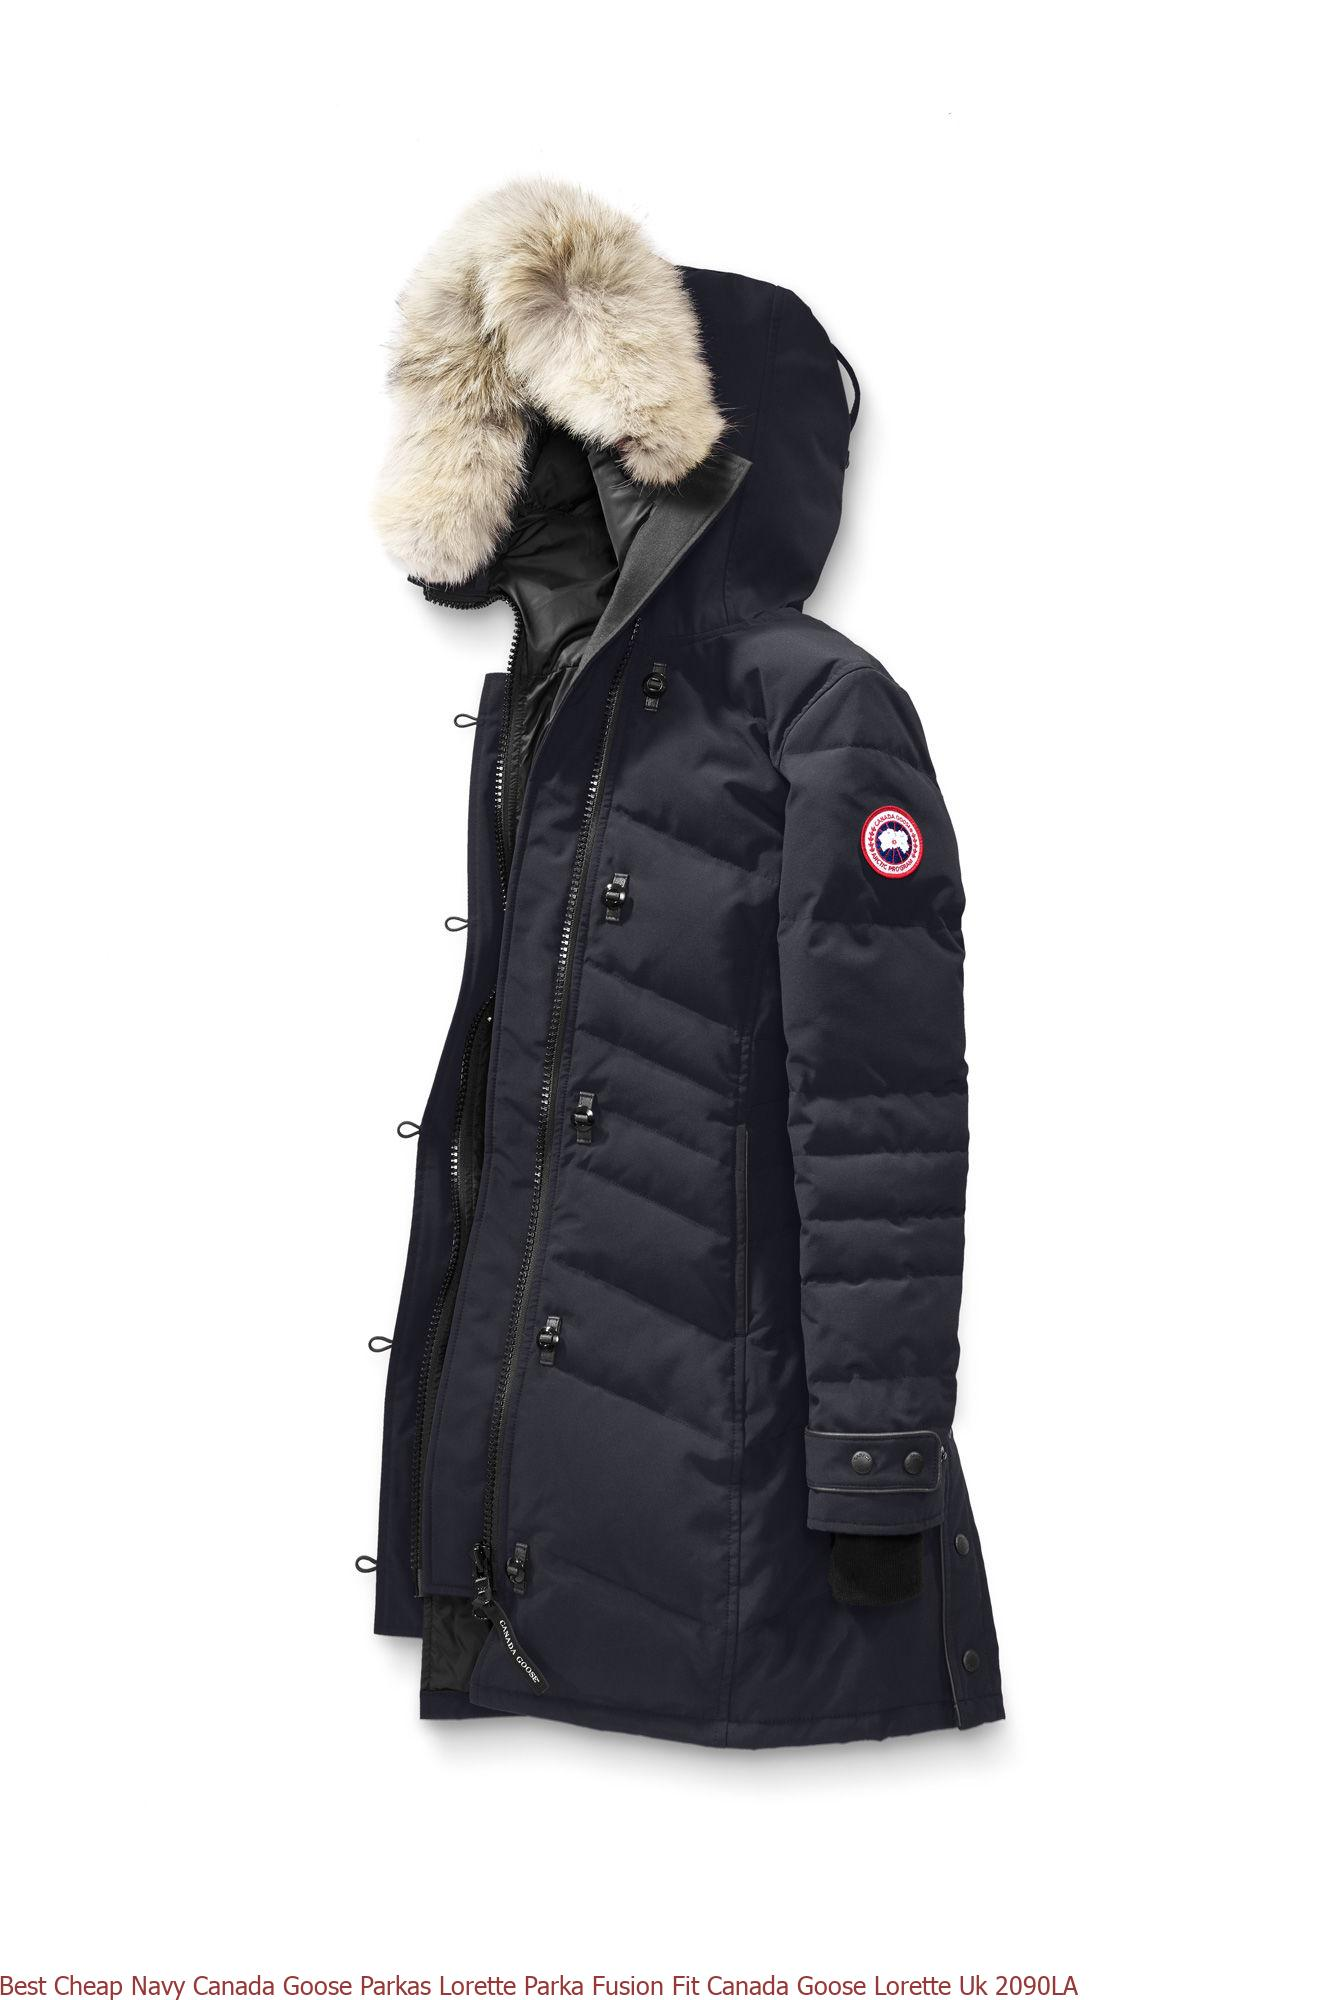 The factory direct Silverbirch Canada Goose Parkas Lorette Parka Black Label Canada Goose Outlet Store Quebec 2090LB